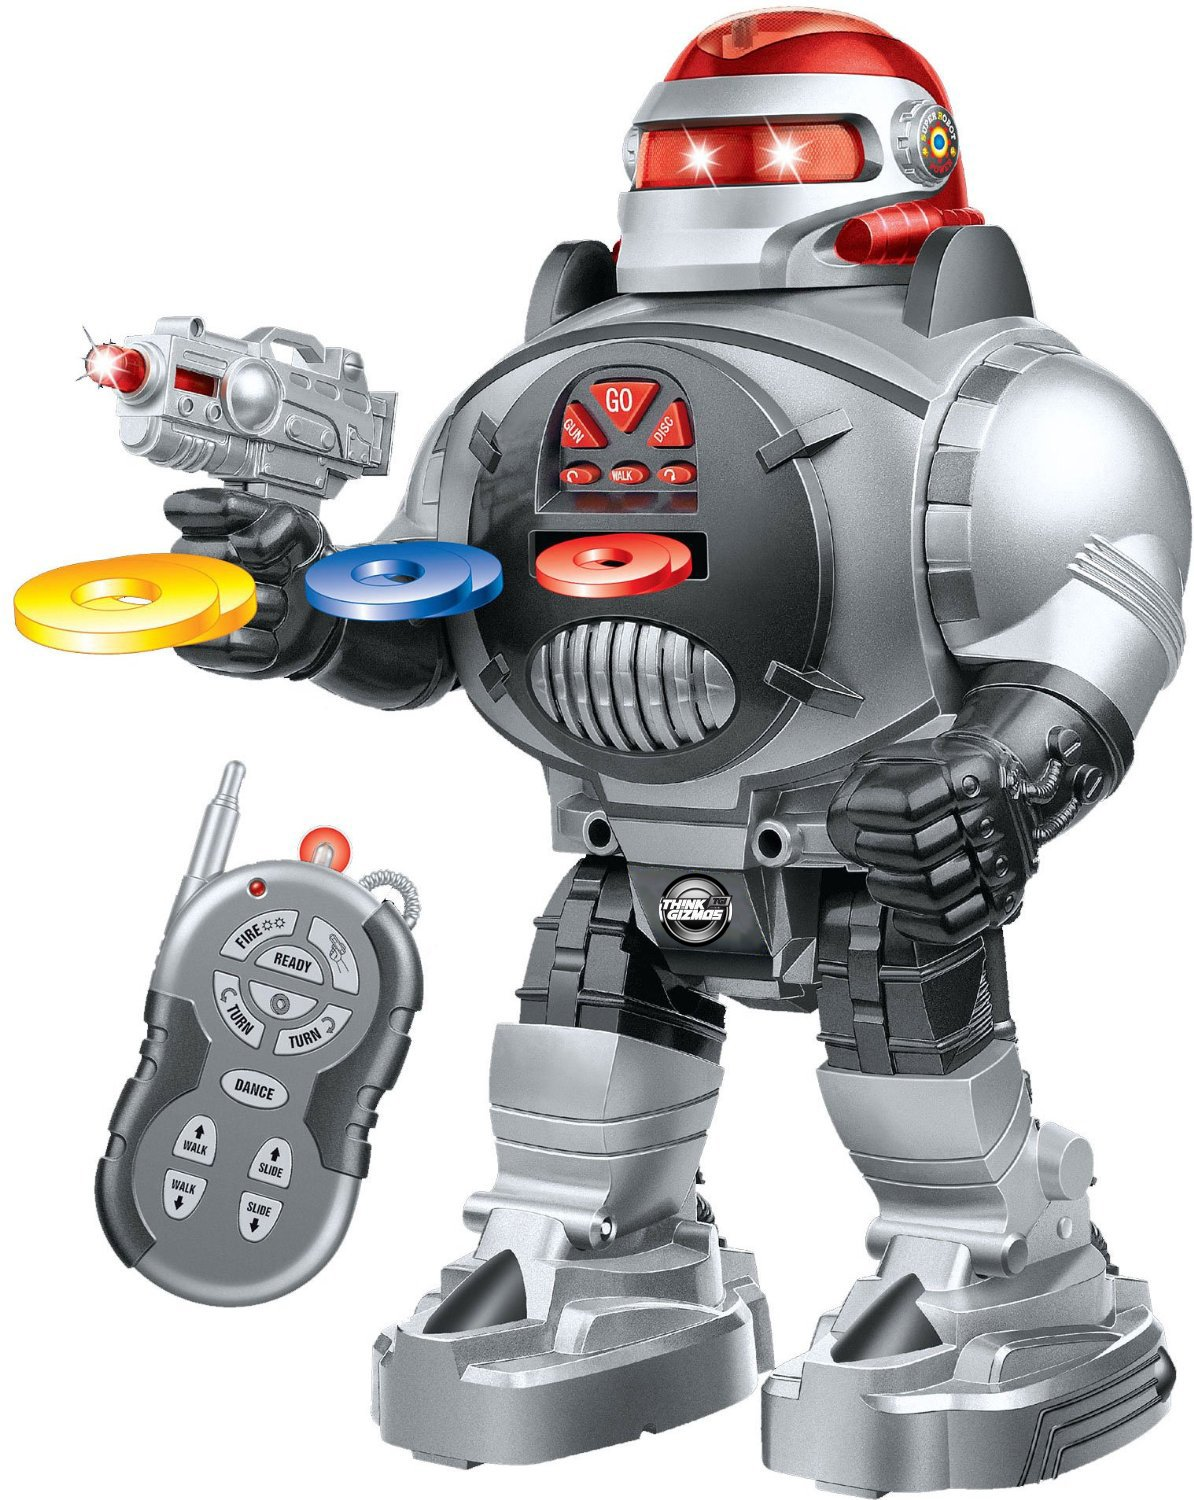 image of a gray Toy robot holding a gun with remote